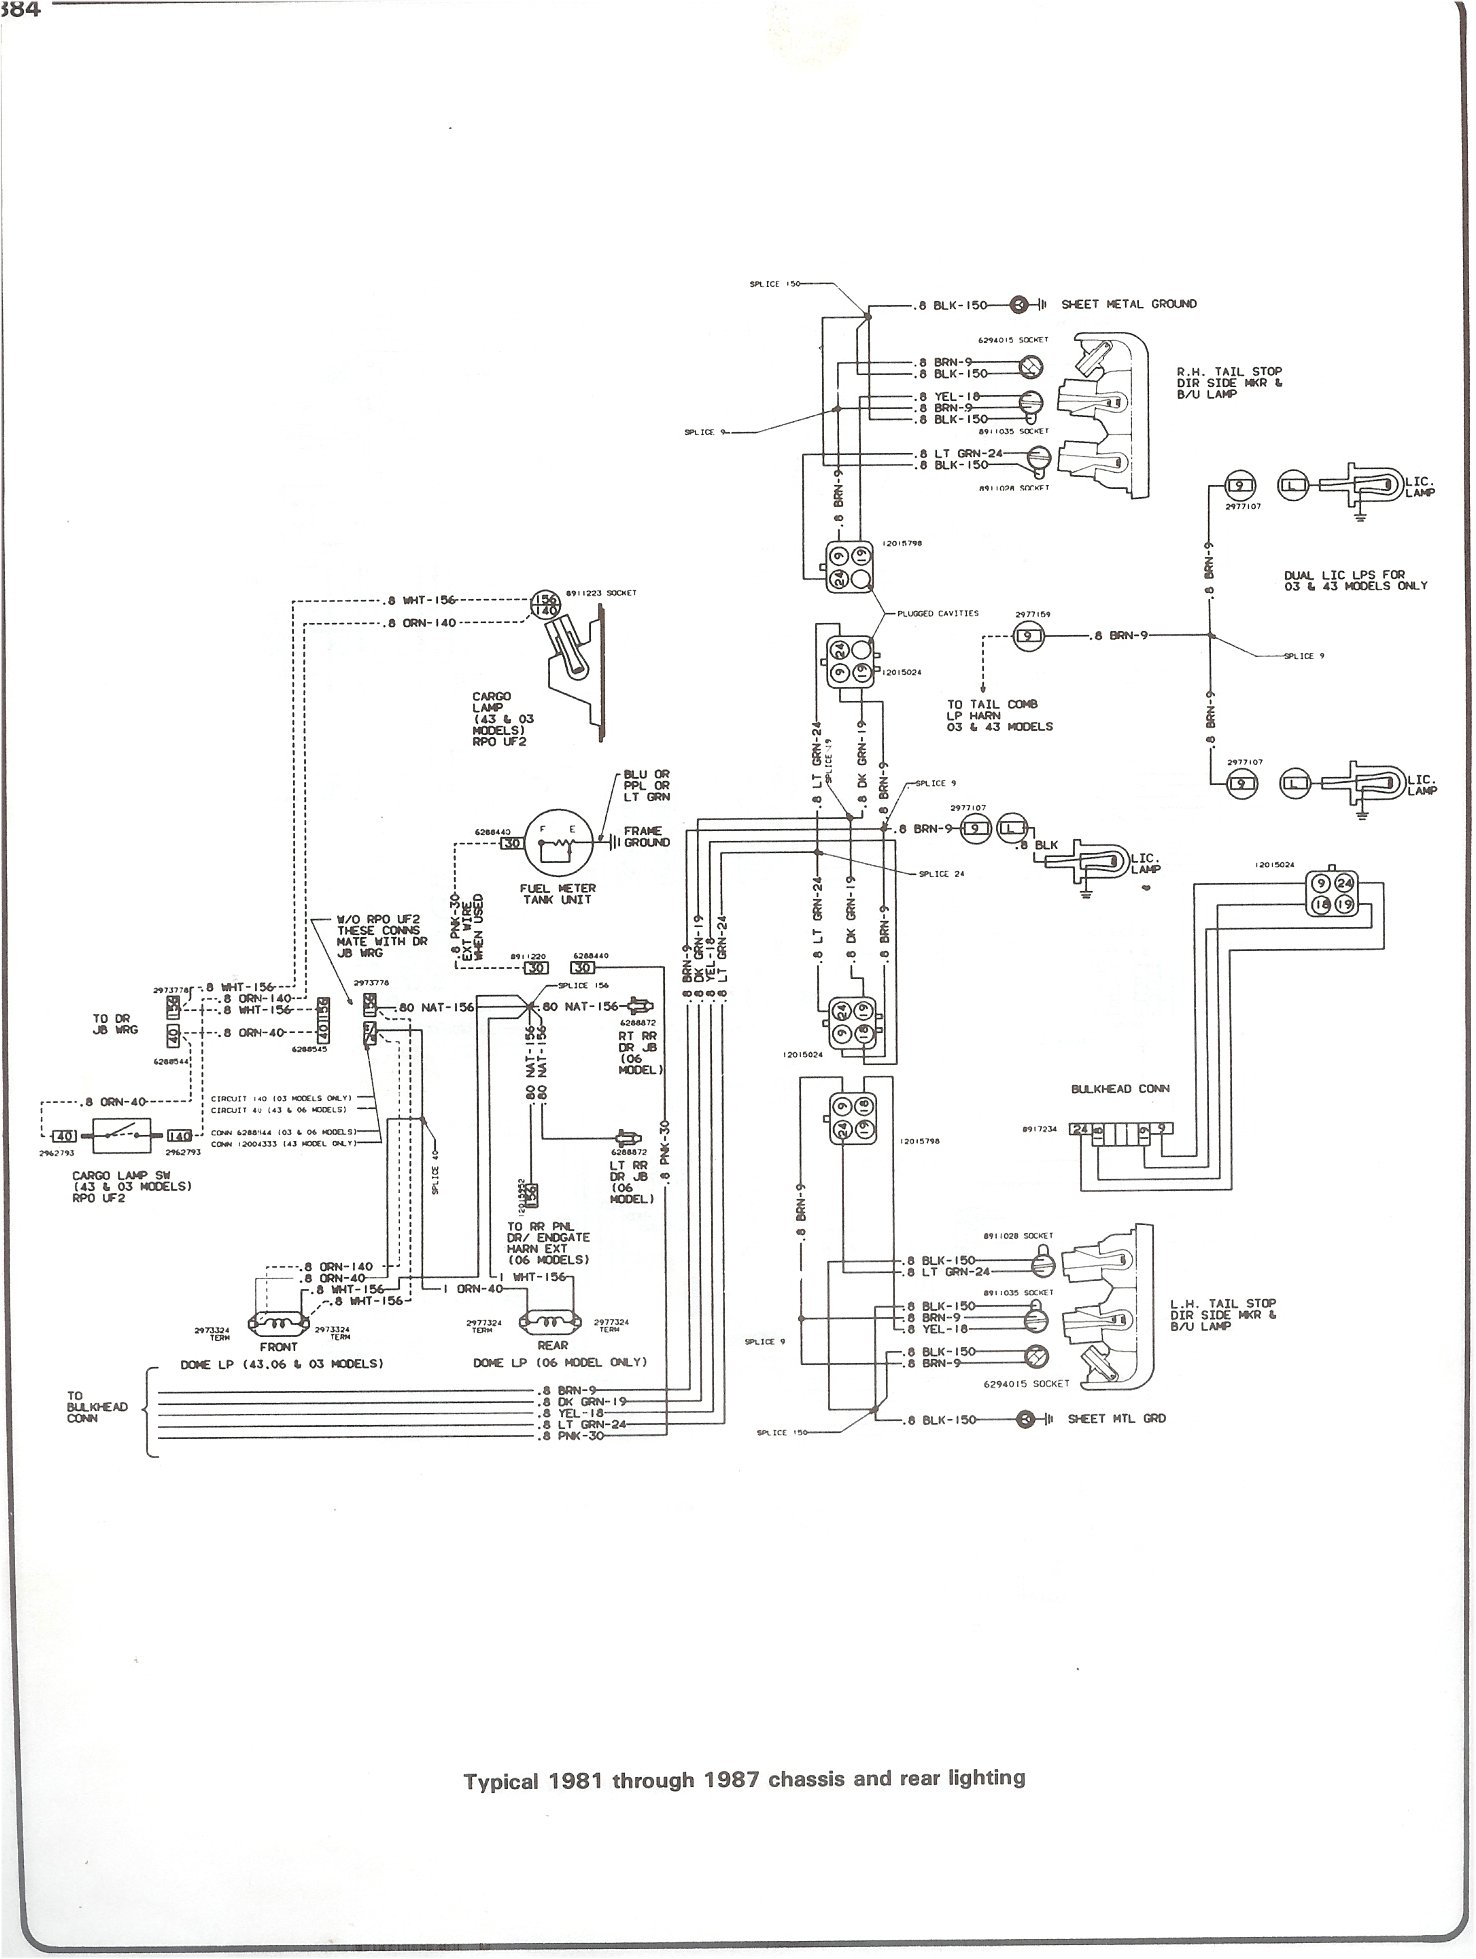 1985 Chevy Suburban Dash Wiring Diagram | Wiring Diagram on